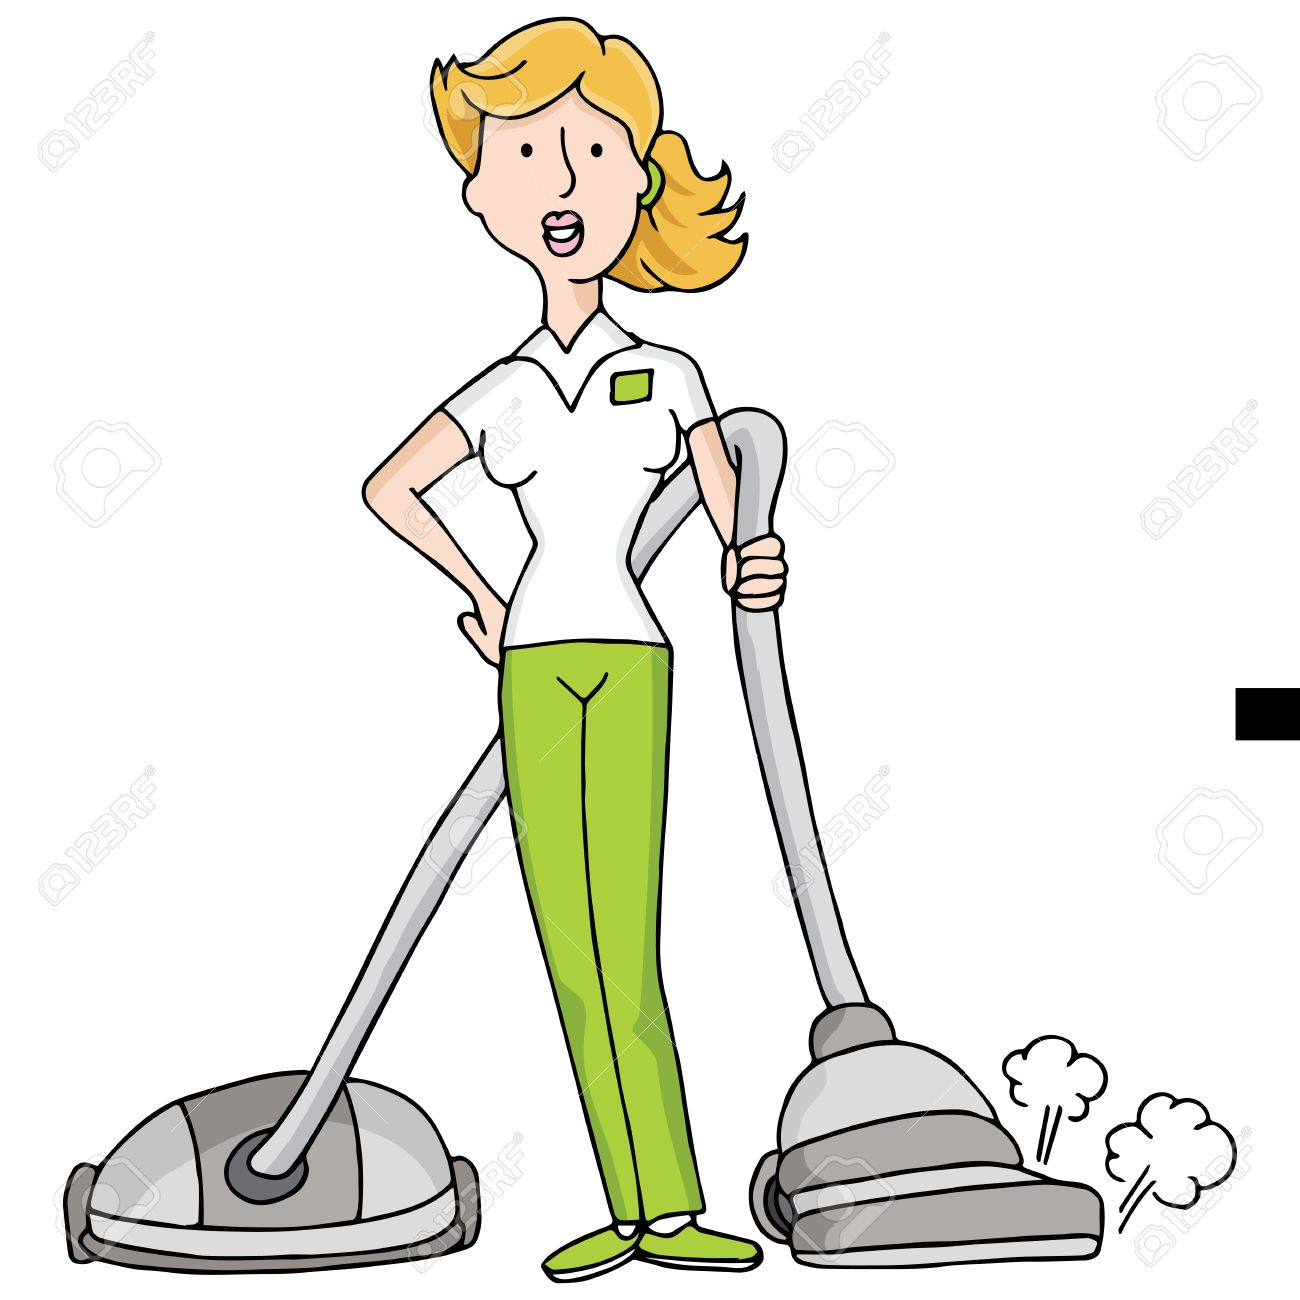 Vacuum cleaner clipart vacuum cleaner clip art - An Image Of Female With A Vacuum Cleaner Stock Vector 29380120